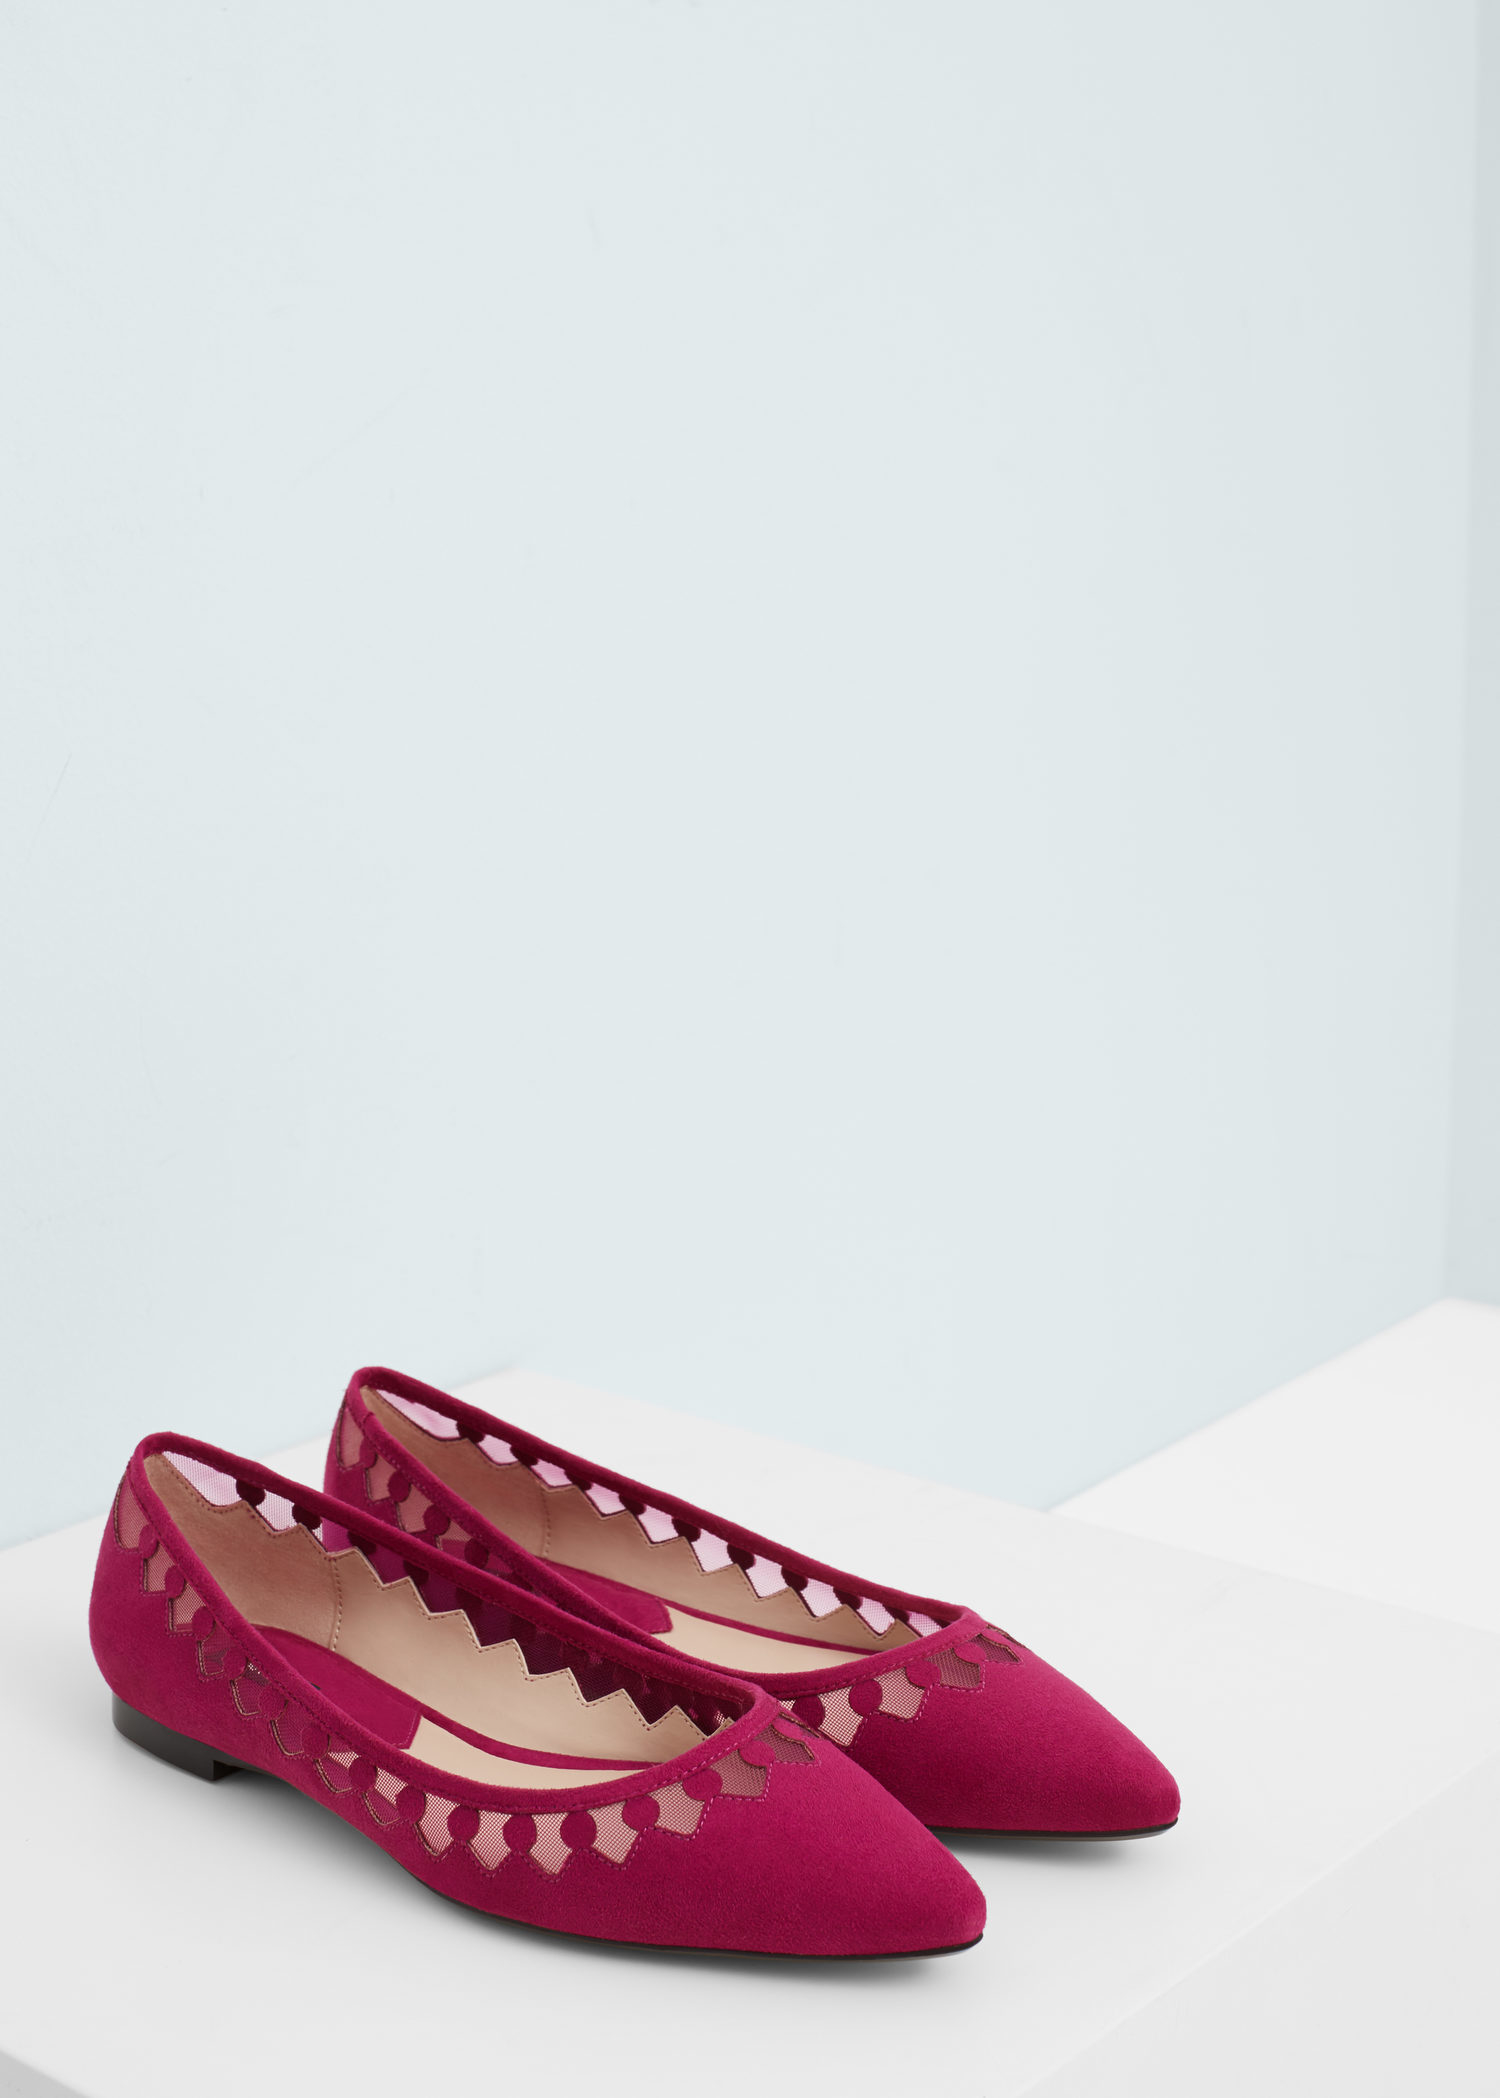 Mango Pointed Toe Flat Shoes In Purple | Lyst